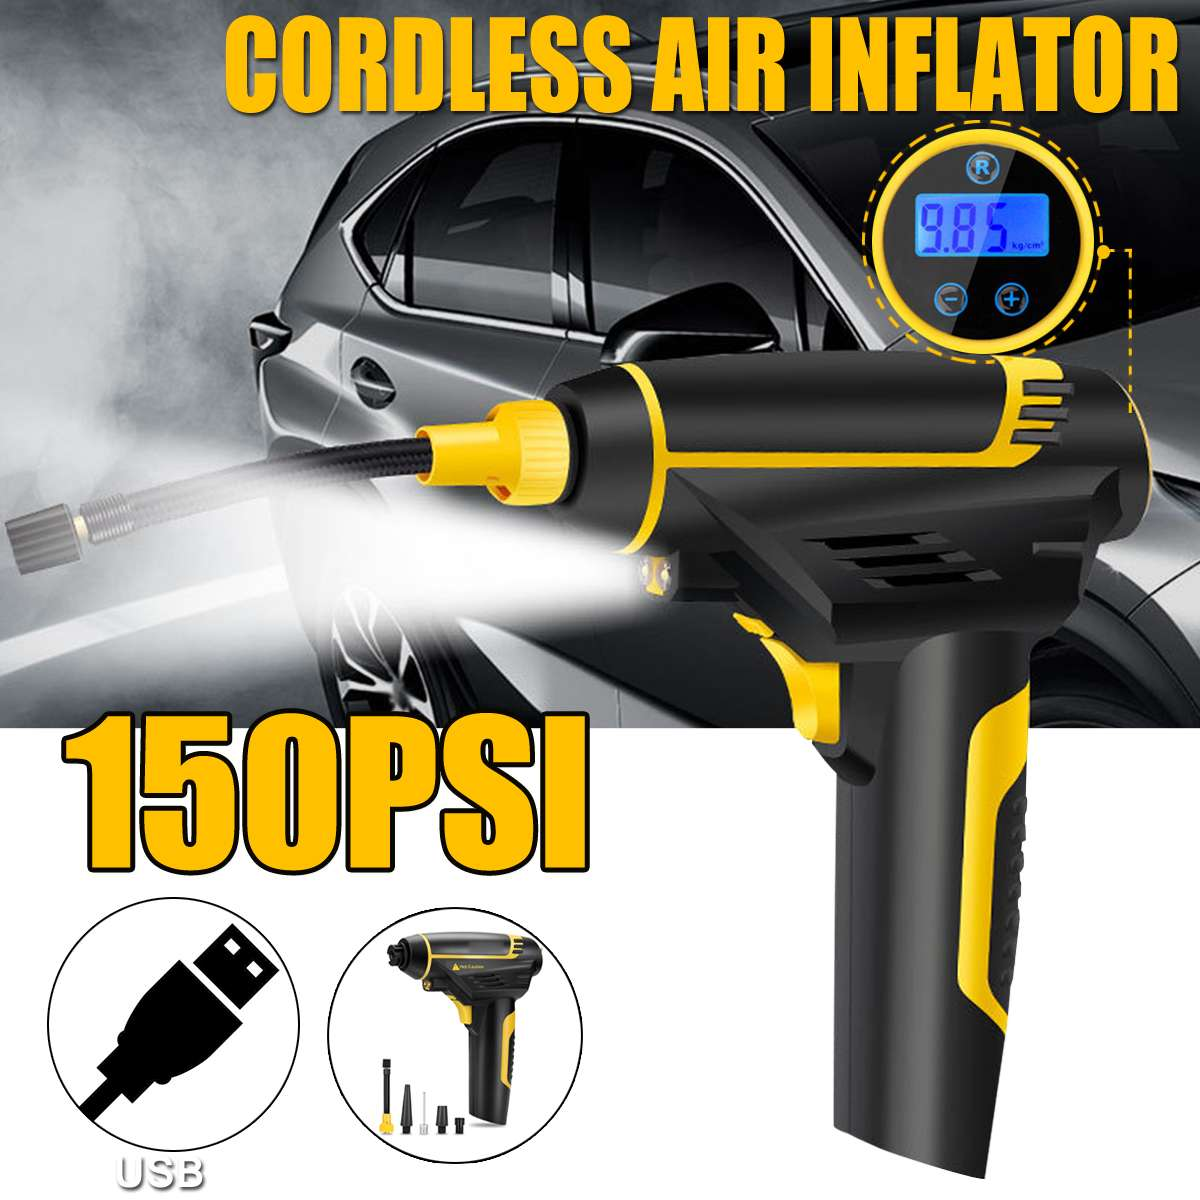 12V 150PSI Cordless Handheld Air Inflatable Pump 120W Emergency Car Tyre Inflator Pump LCD Digital with 2200mAh USB Charging